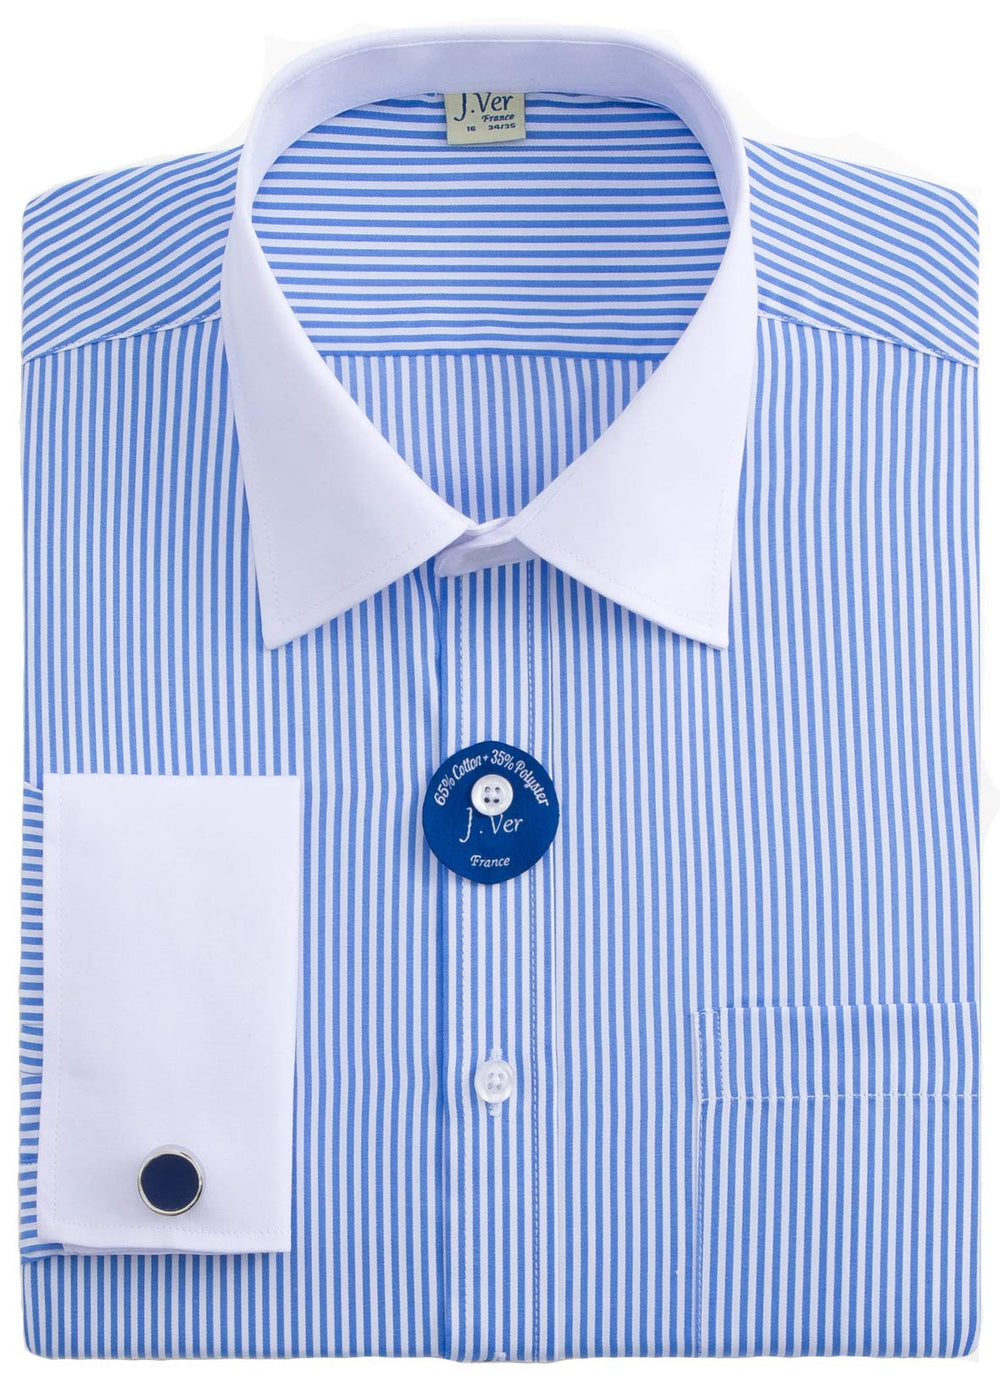 White Collar Stripe Shirt